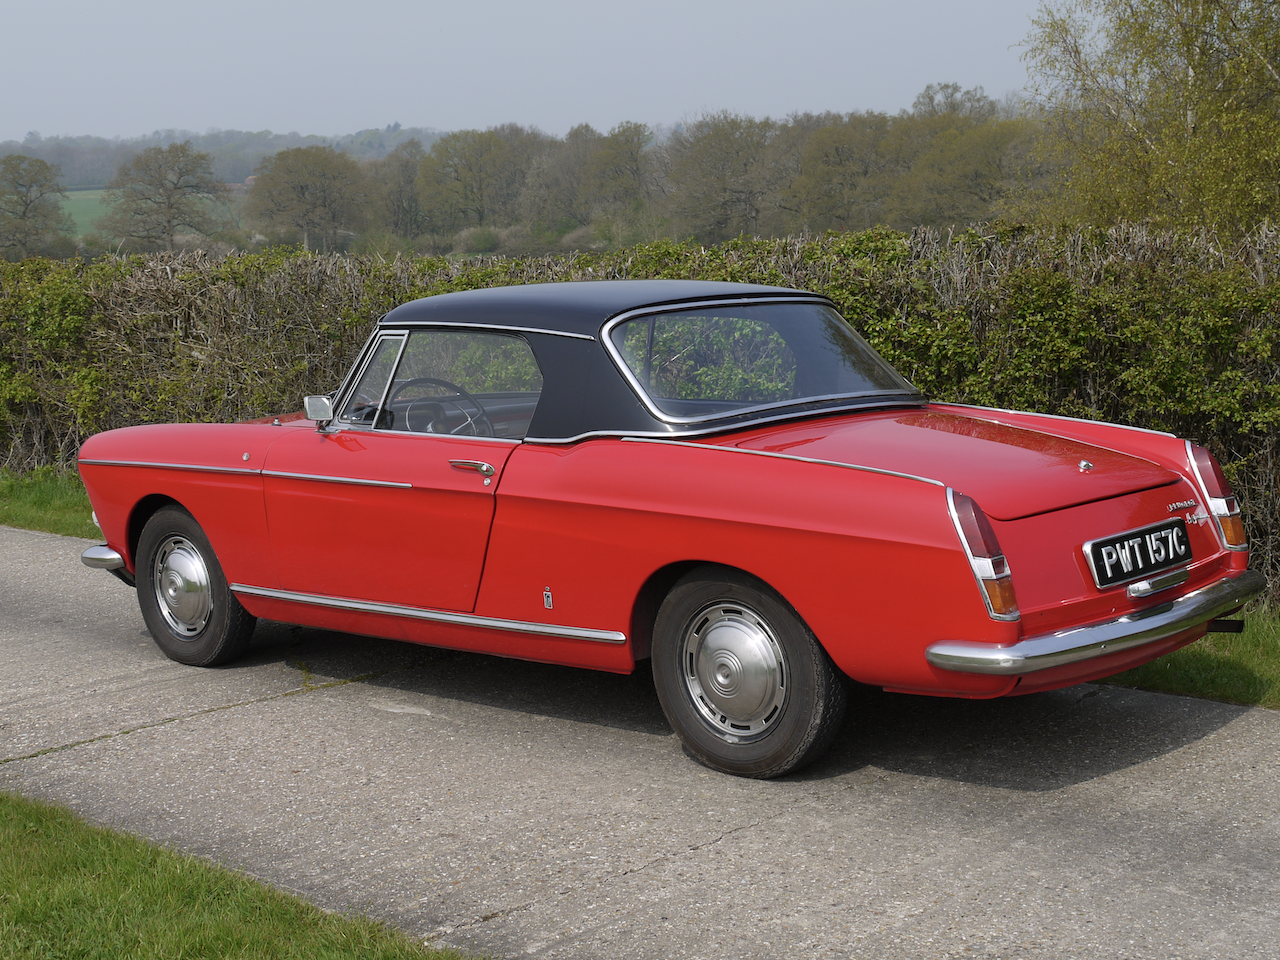 1965 Peugeot 404 Cabriolet Injection For Sale (picture 2 of 6)